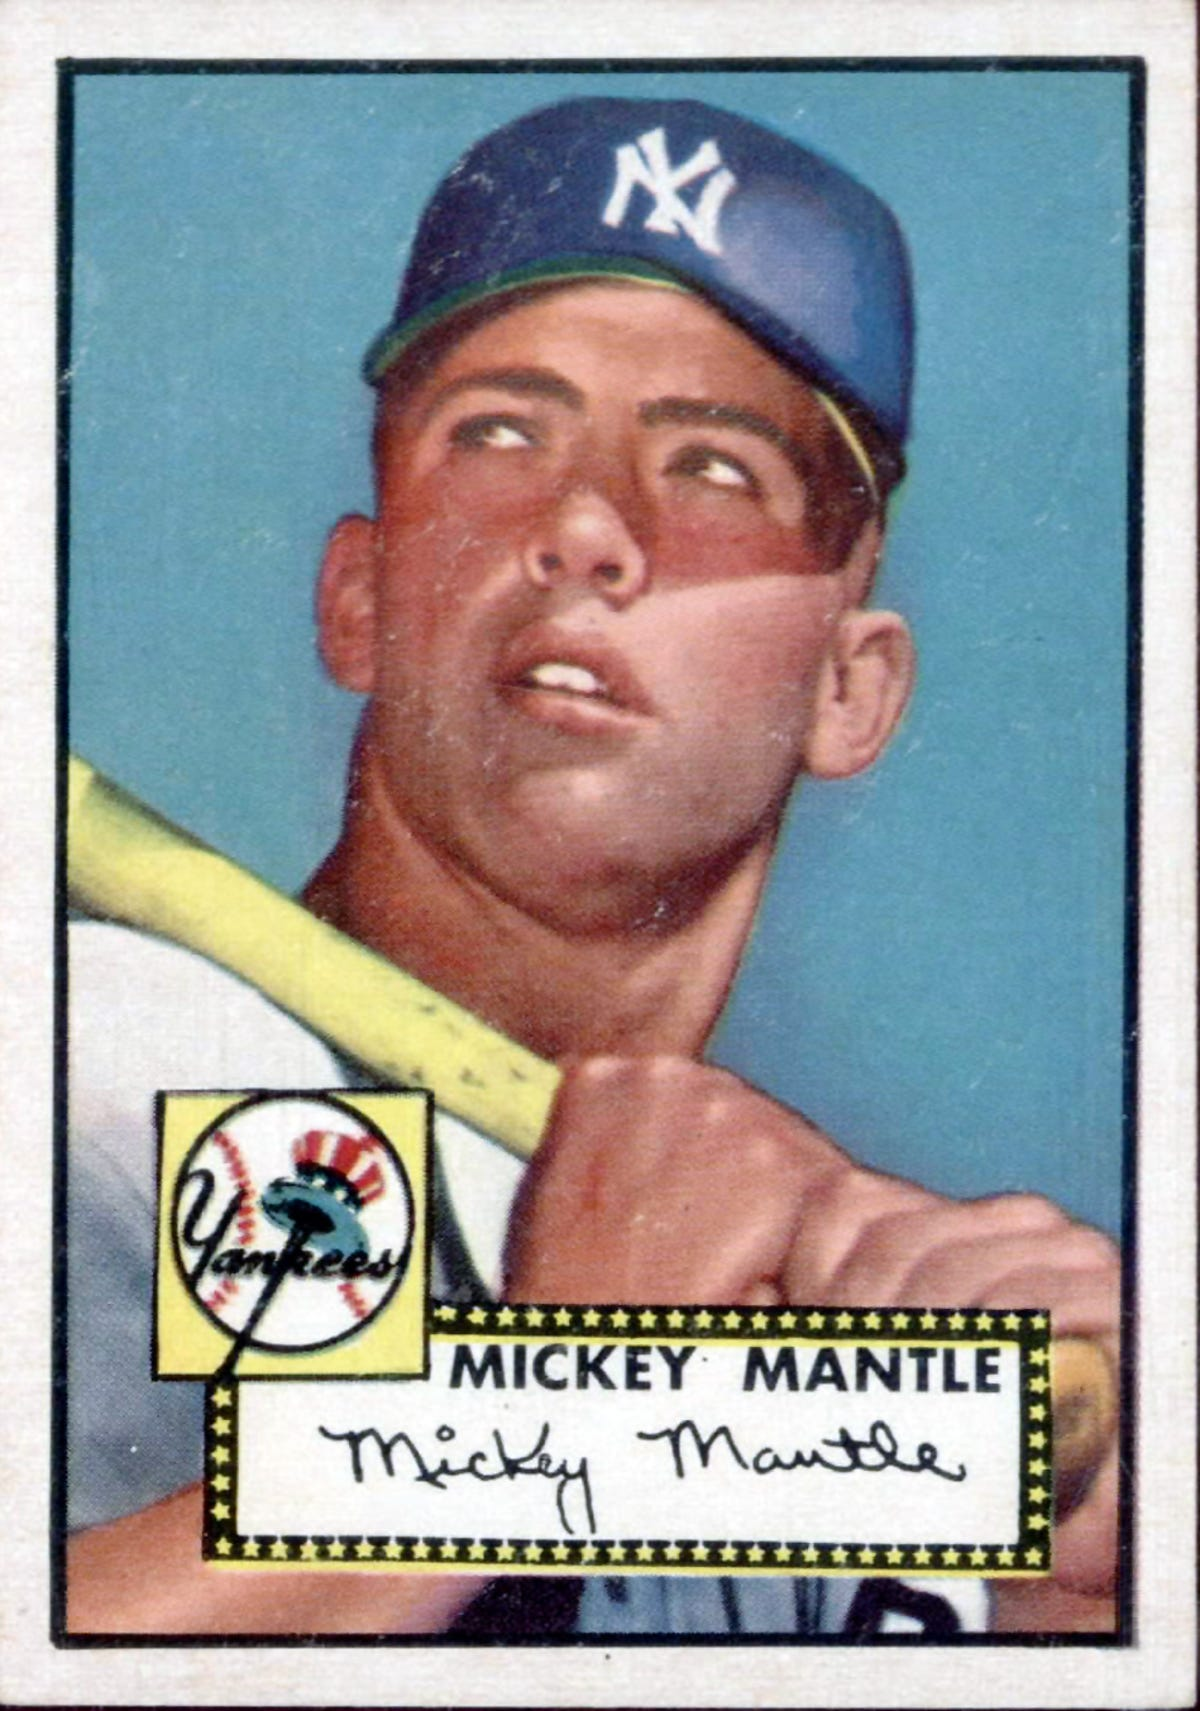 1952 Mickey Mantle Baseball Card Sells For Near Record 288